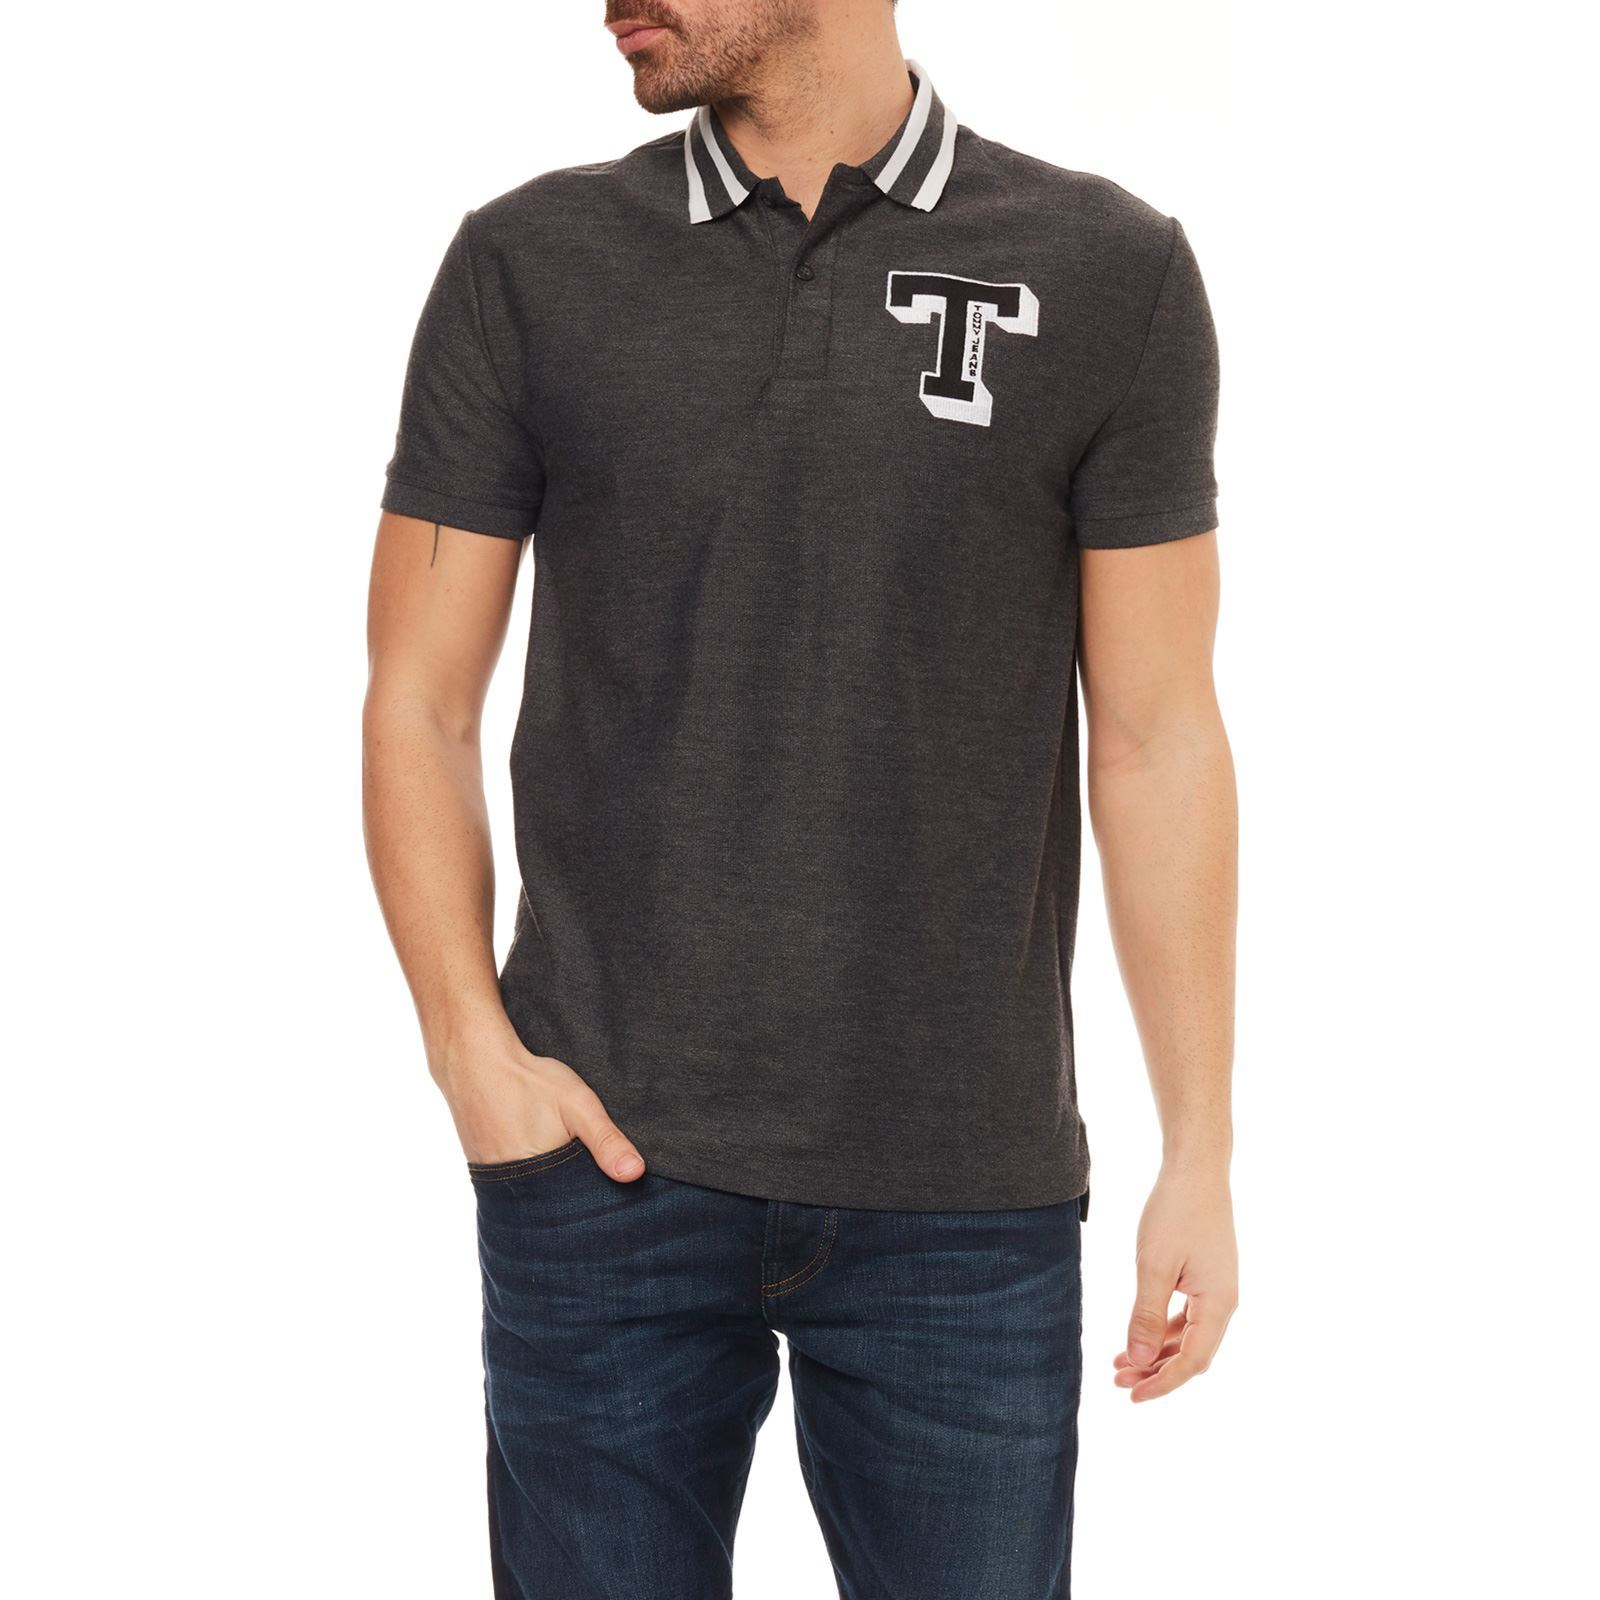 Anthracite Courtes Jeans Tommy Polo Manches HqqIOpF0